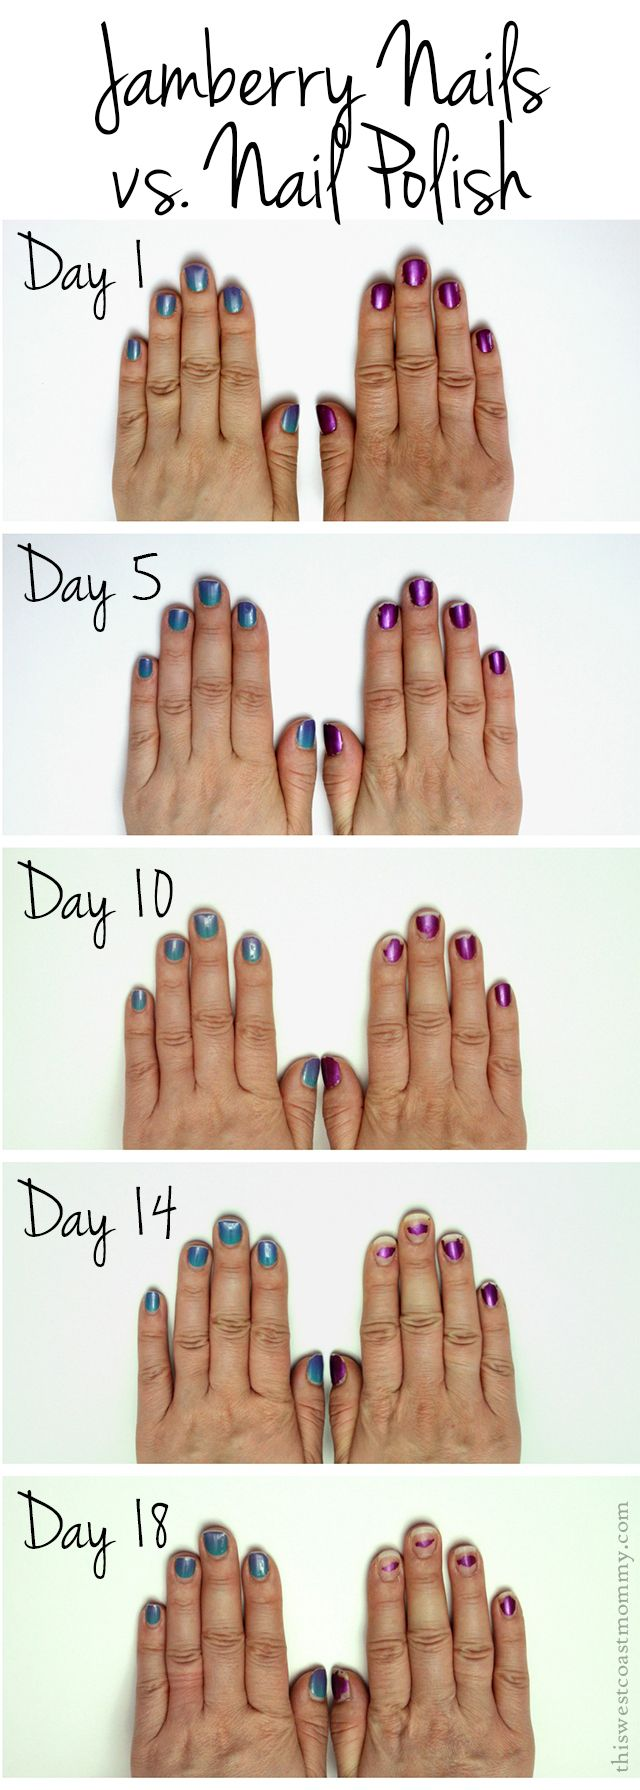 How do Jamberry Nails hold up compared to nail polish over 18 days?Betty Toohey, Jamberry Nails Independent Consultant. Shop at www.bettytoohey.jamberrynails.net